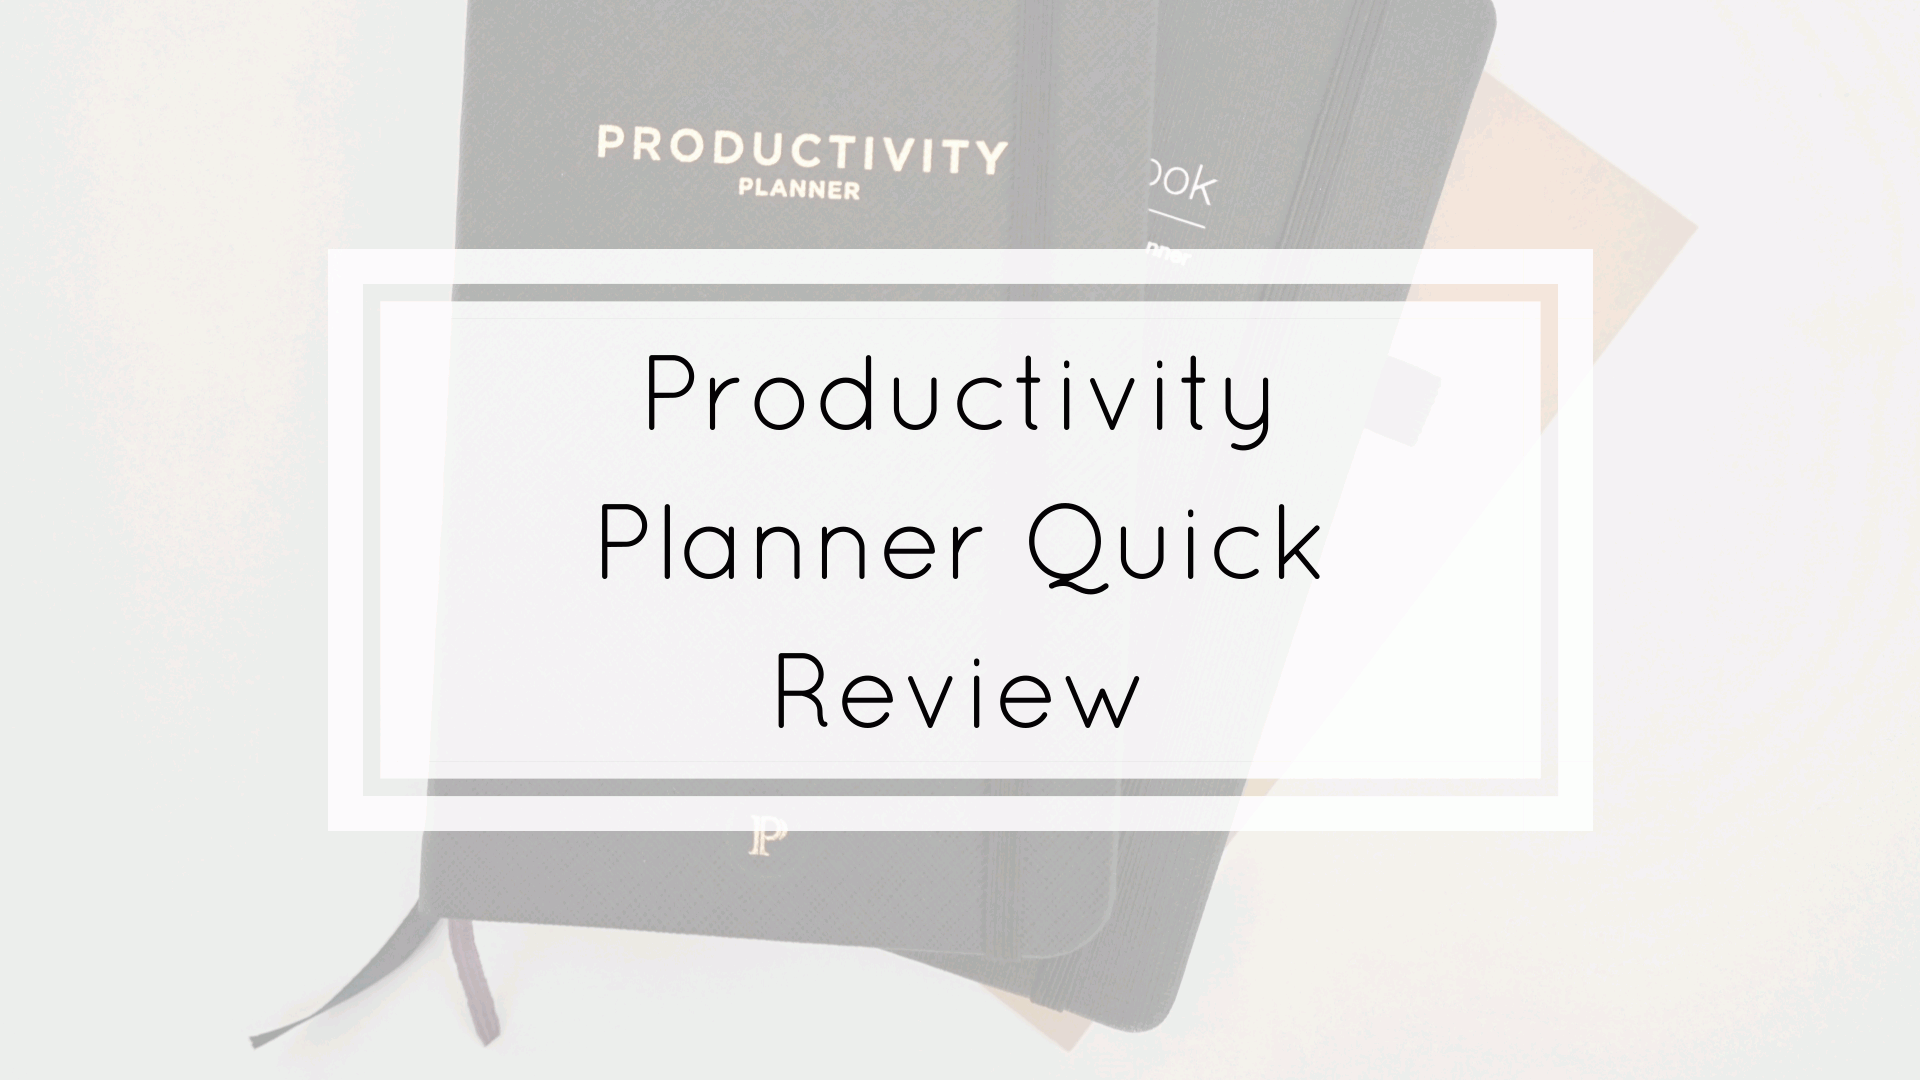 Productivity Planner Quick Review Tools Of Excellence - Productivity planner review